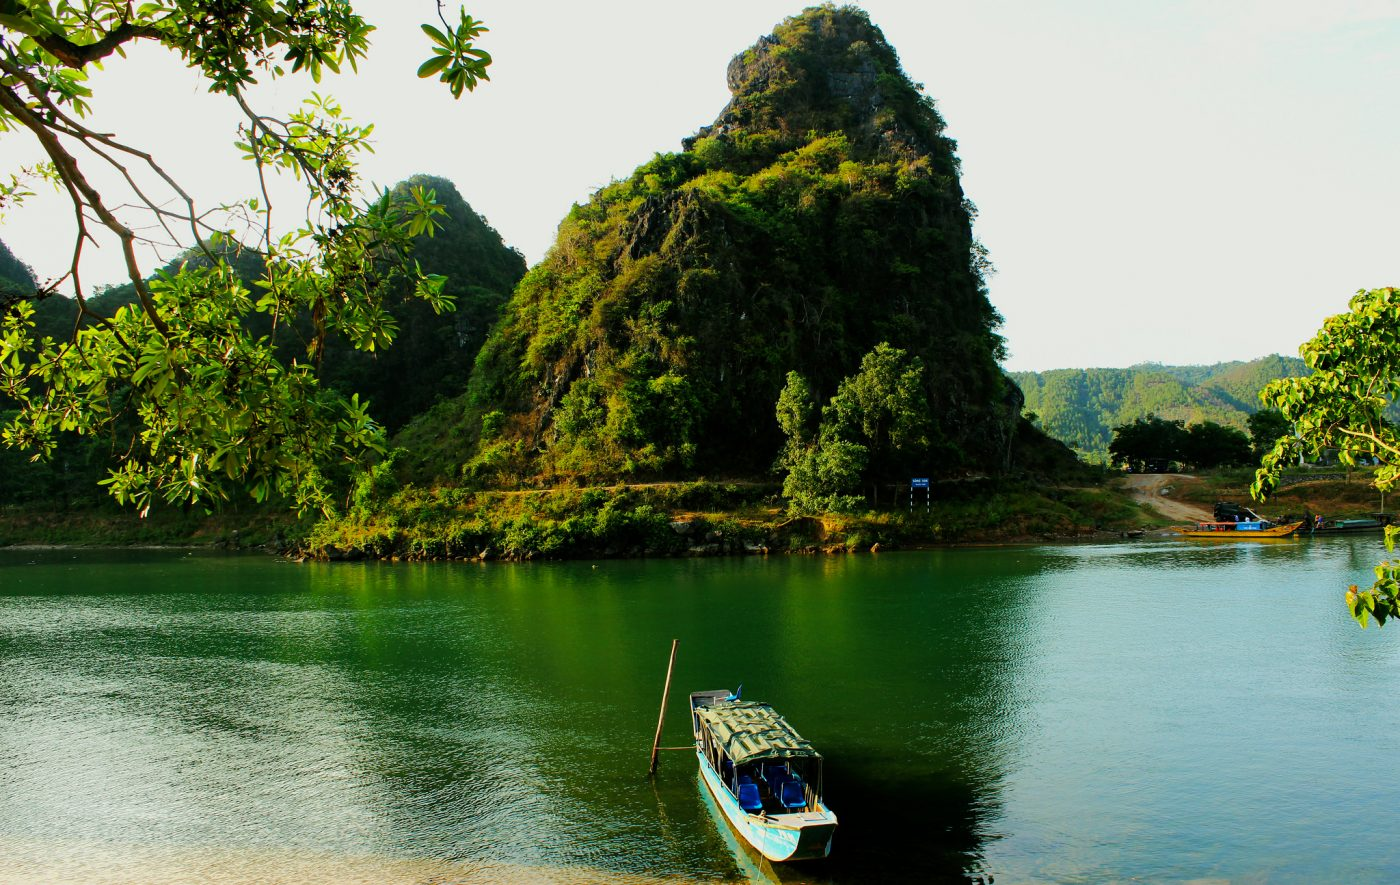 Things to do in Vietnam include visiting Phong Nha